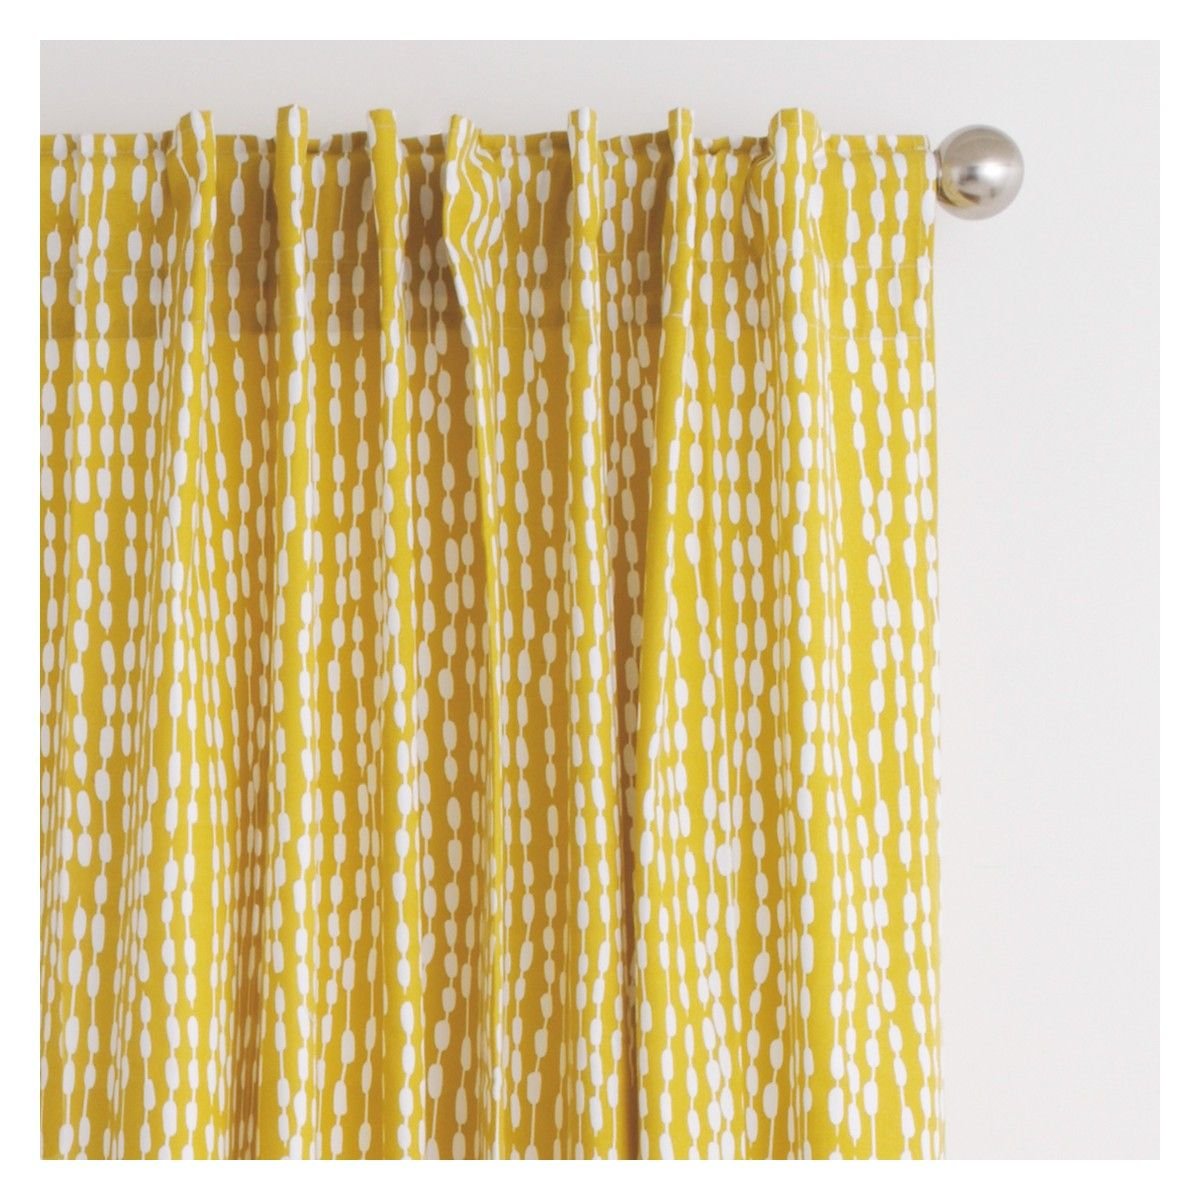 Trene Pair Of Yellow Patterned Curtains 145 X 170cm Patterned Curtains Bedroom Yellow Curtains Mustard Yellow Curtains